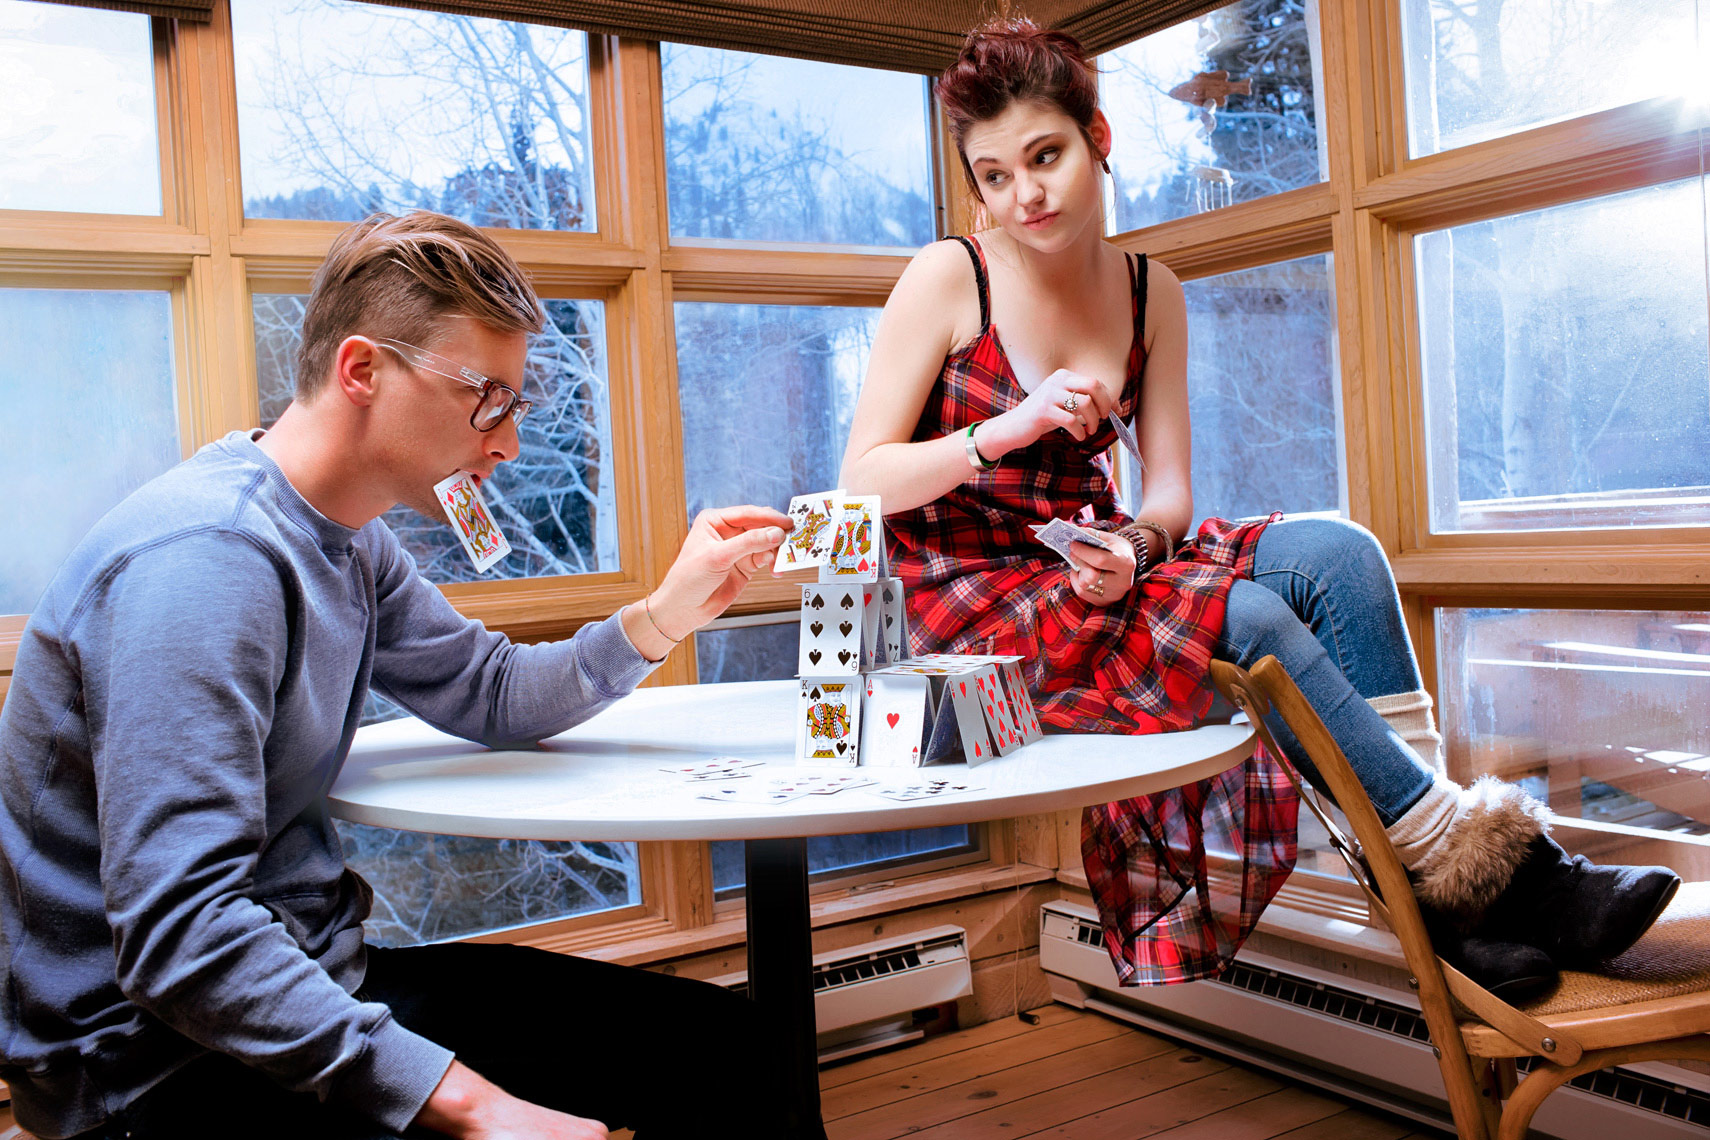 lifestyle-photo-of-couple-stacking-cards-in-ann-arbor-editorial-photographer-scott-stewart